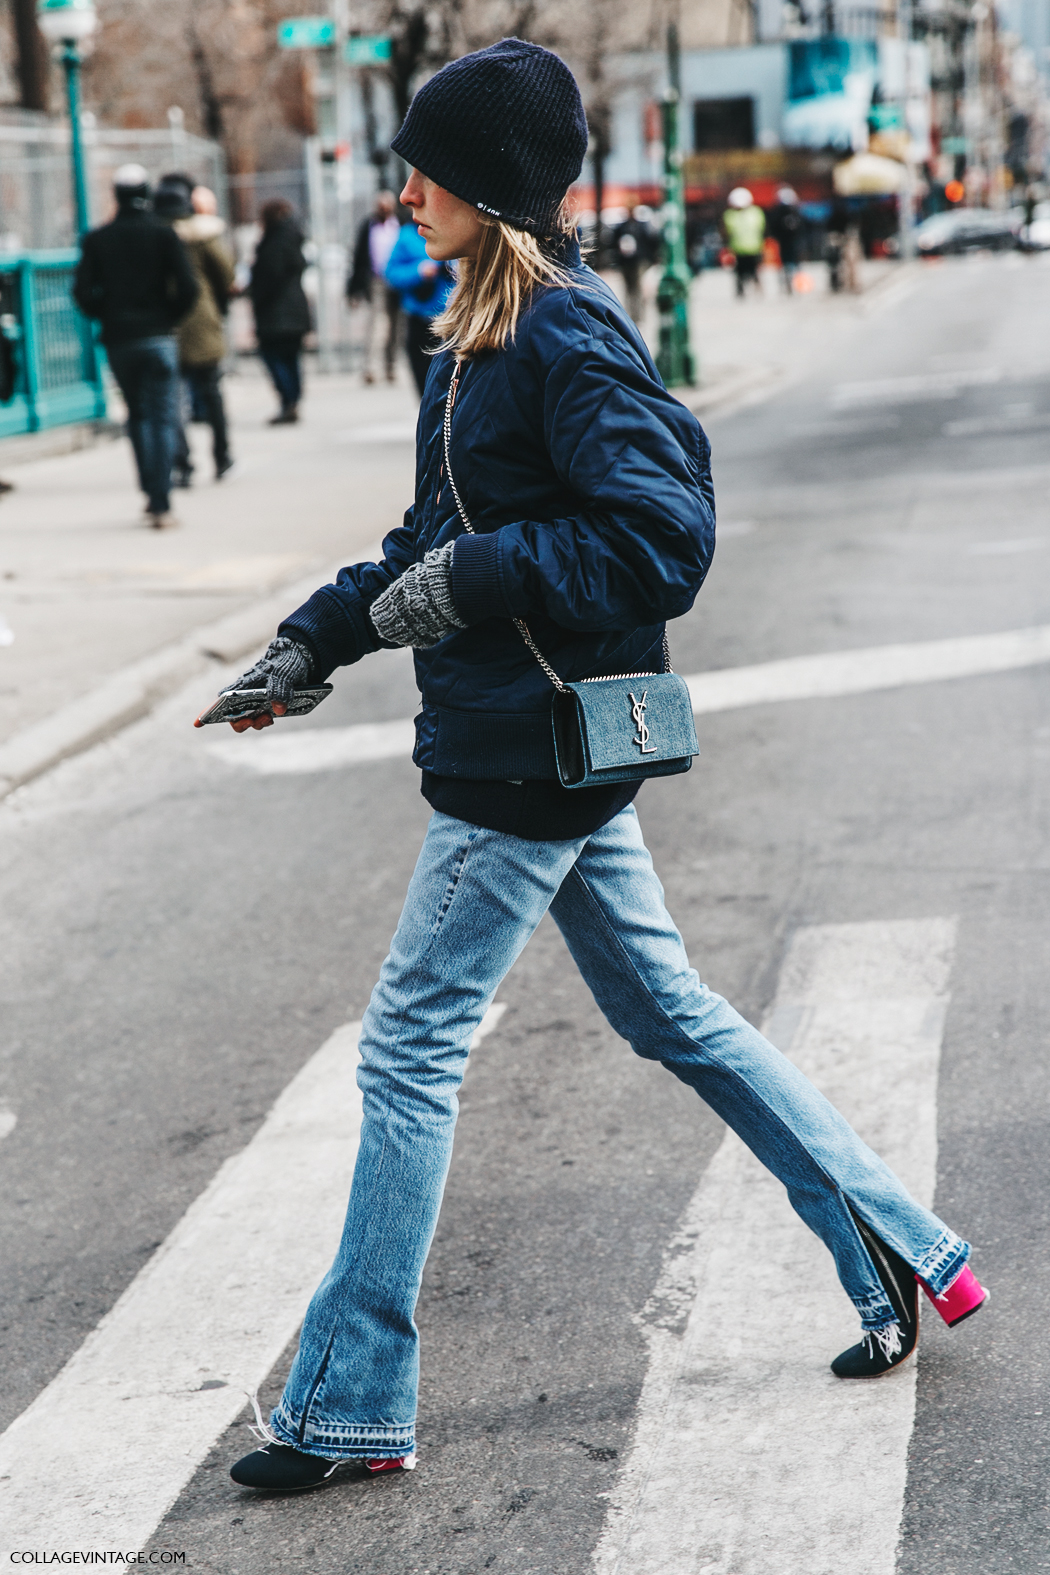 NYFW-New_York_Fashion_Week-Fall_Winter-17-Street_Style-Saint_Laurent_Bag-Jessica_Minkoff-Jeans-Bomber-1